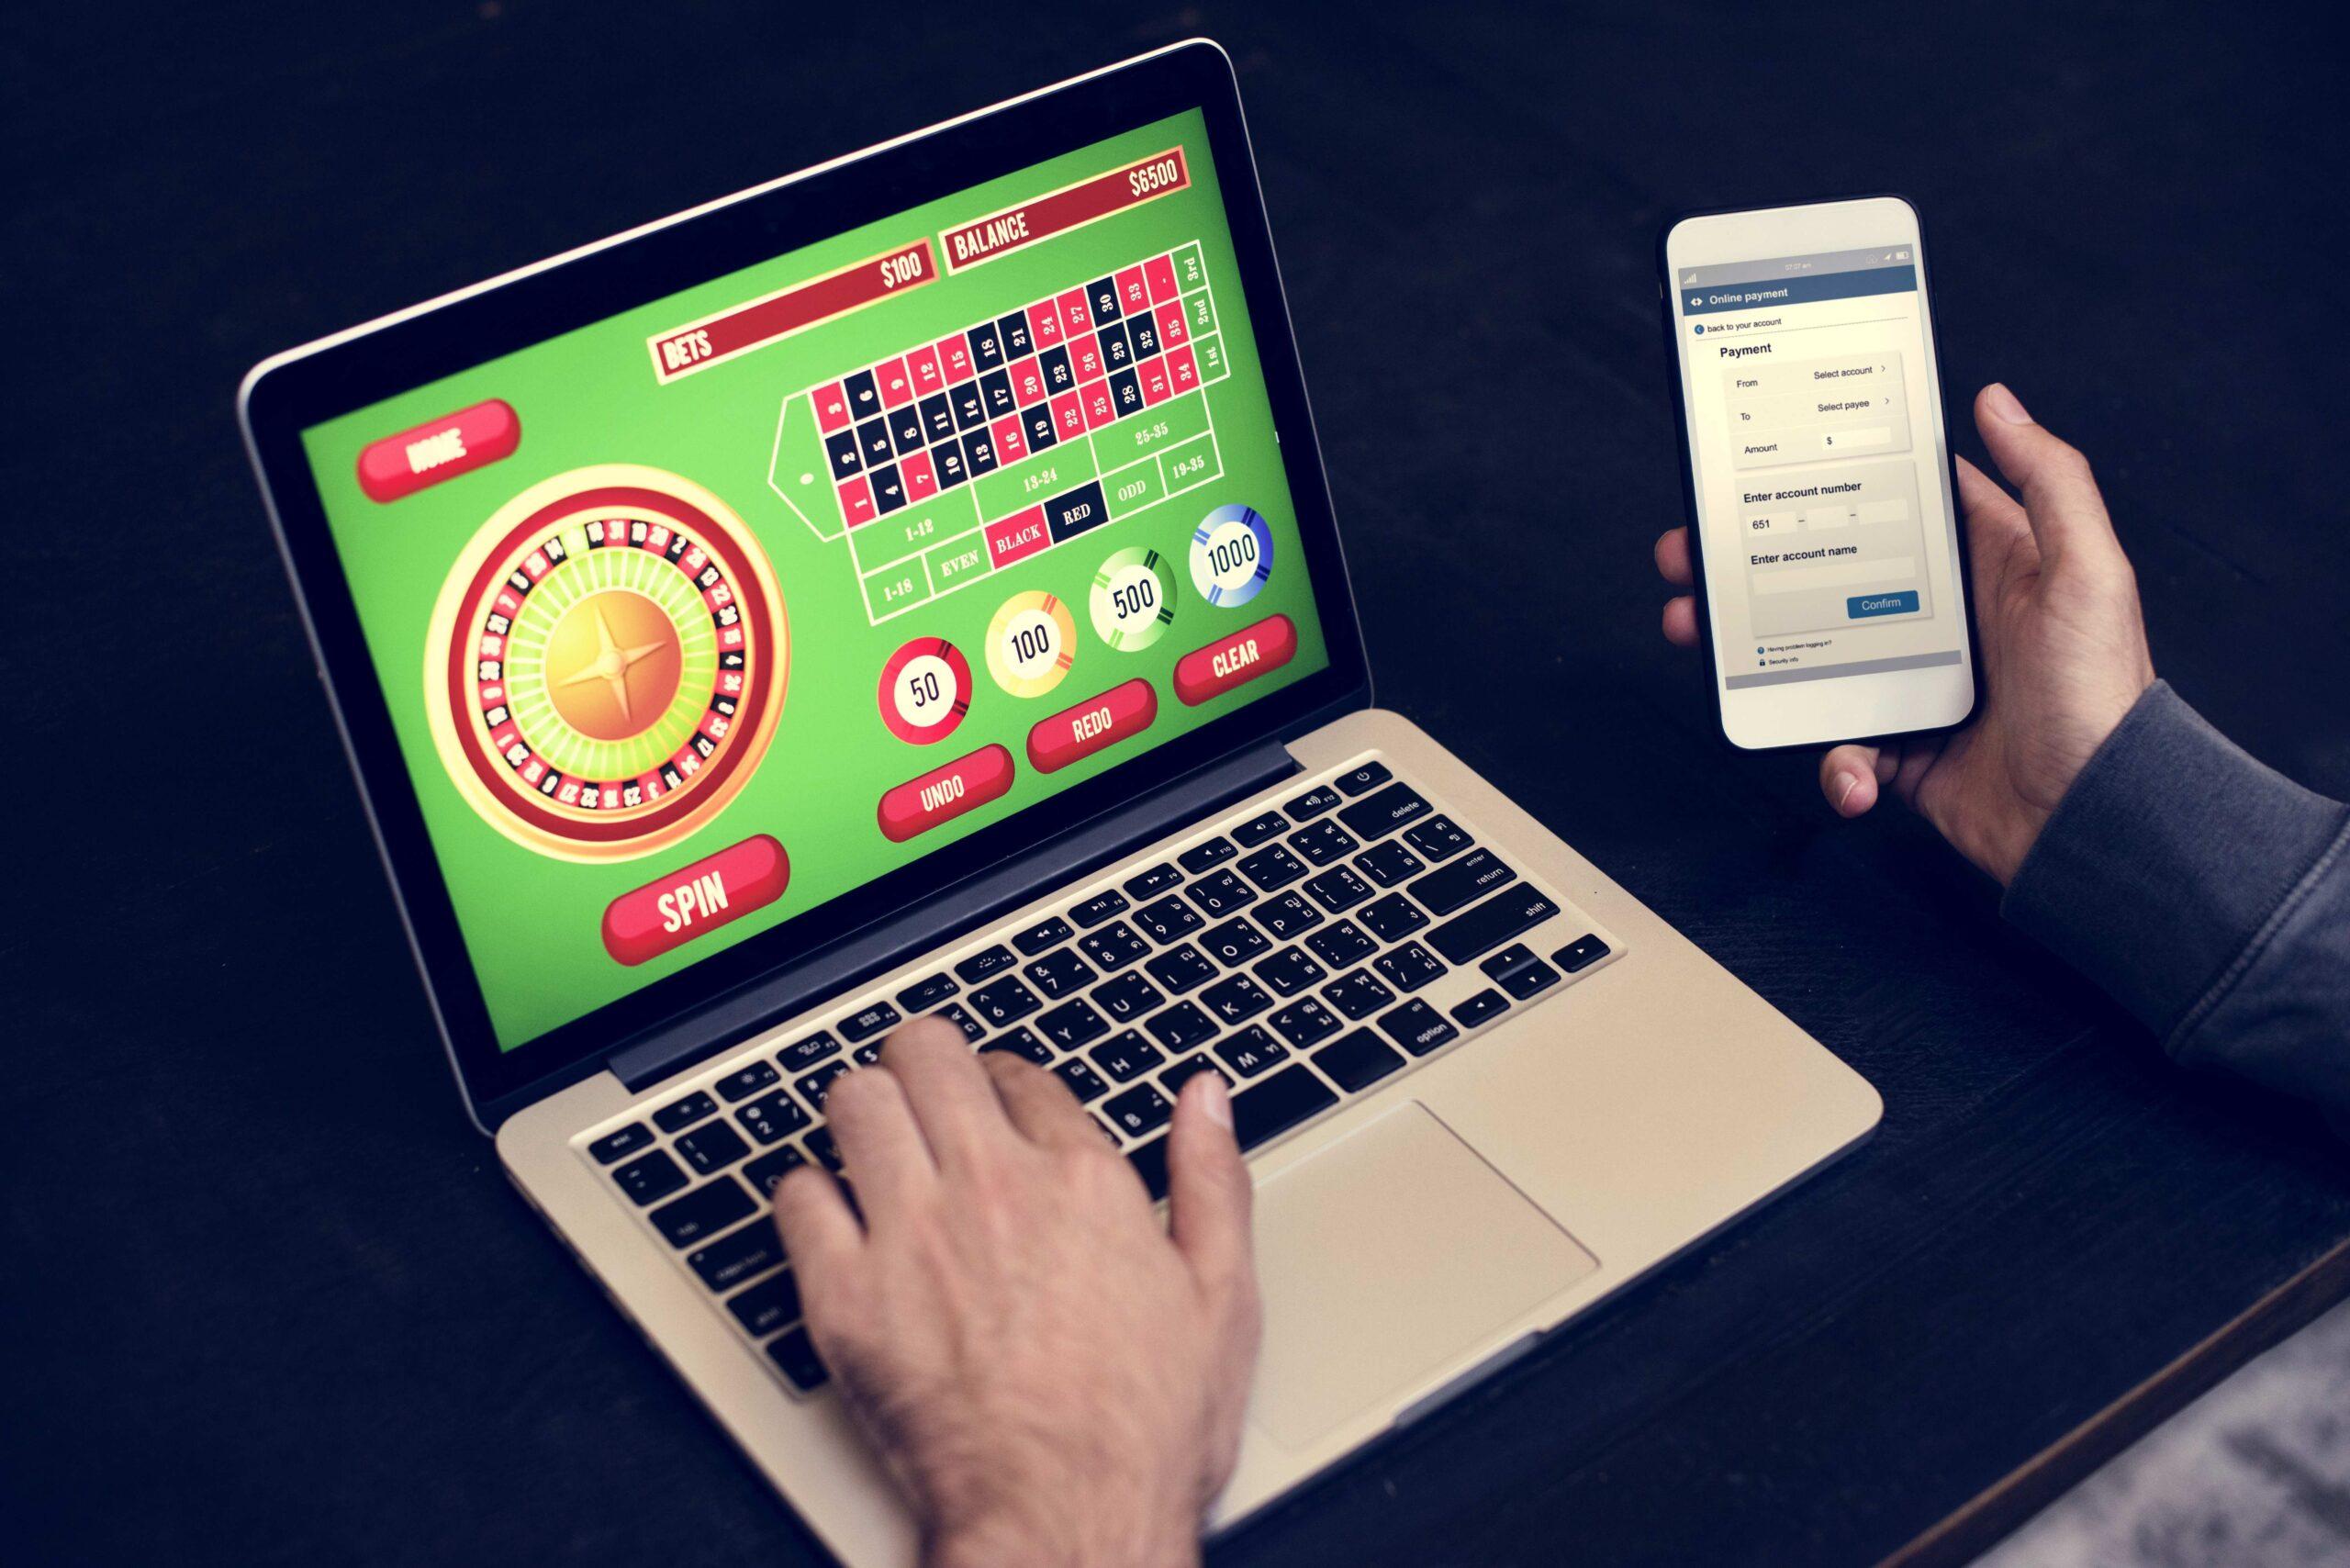 hand-holding-credit-card-playing-online-gambling-casino-slot-content-image